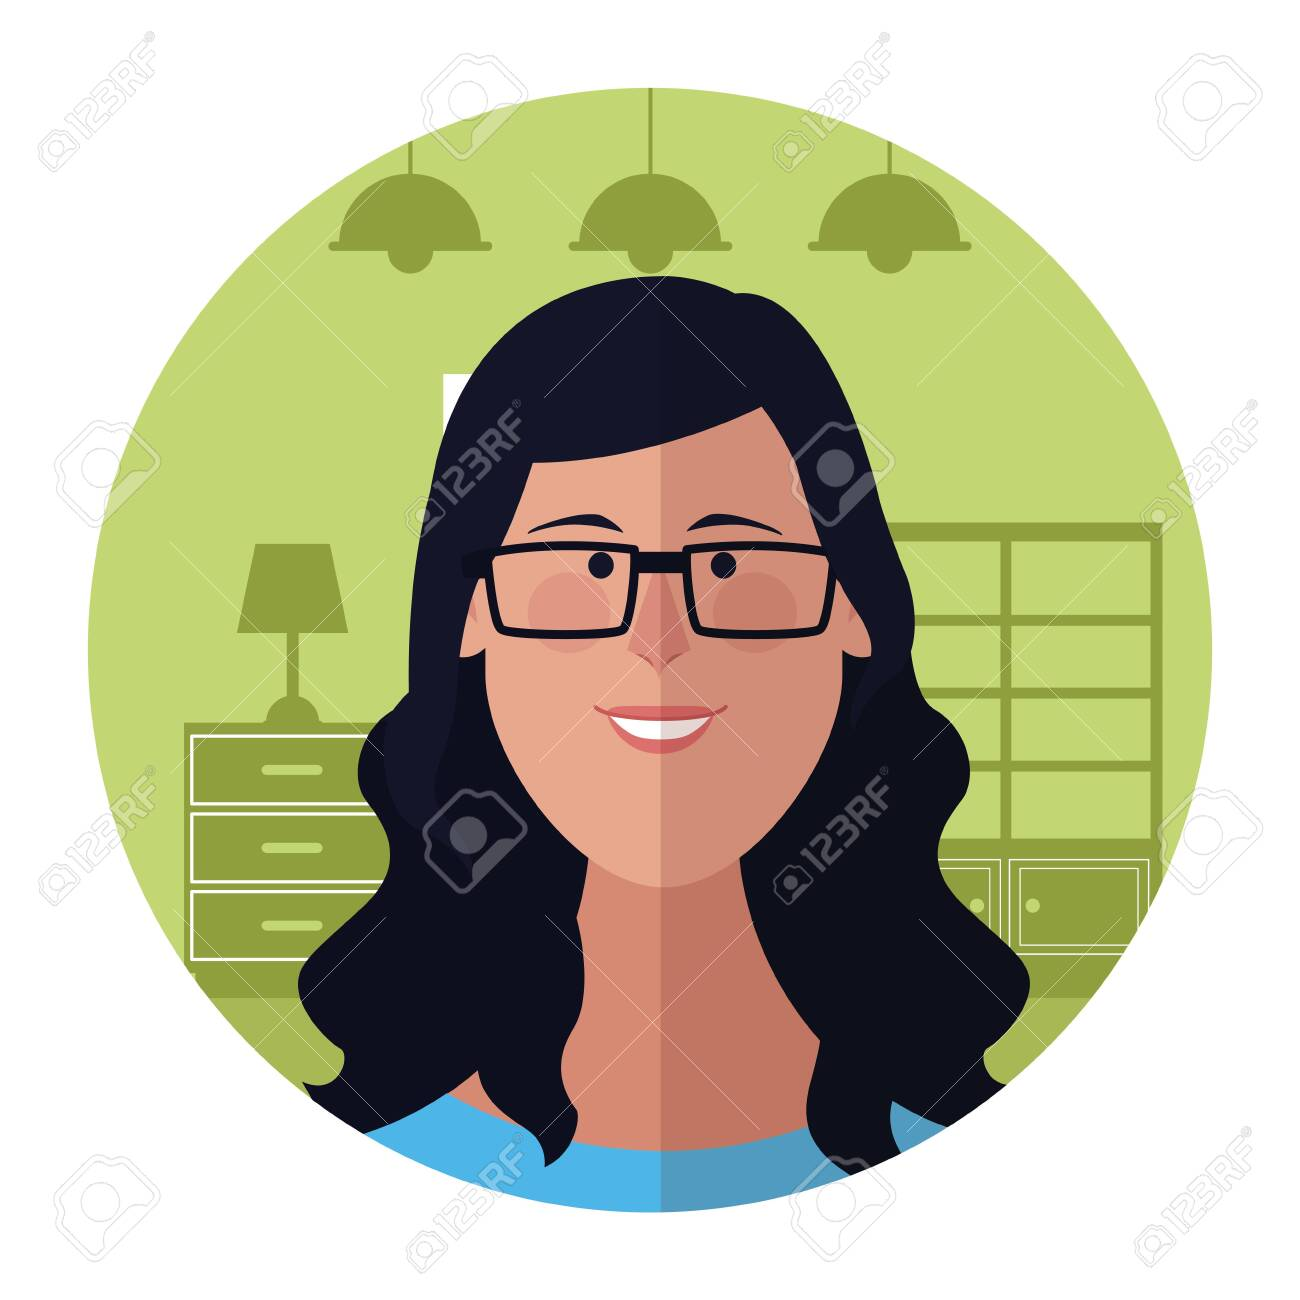 Woman With Glasses Face Cartoon Profile Inside Home Round Icon Royalty Free Cliparts Vectors And Stock Illustration Image 139361379